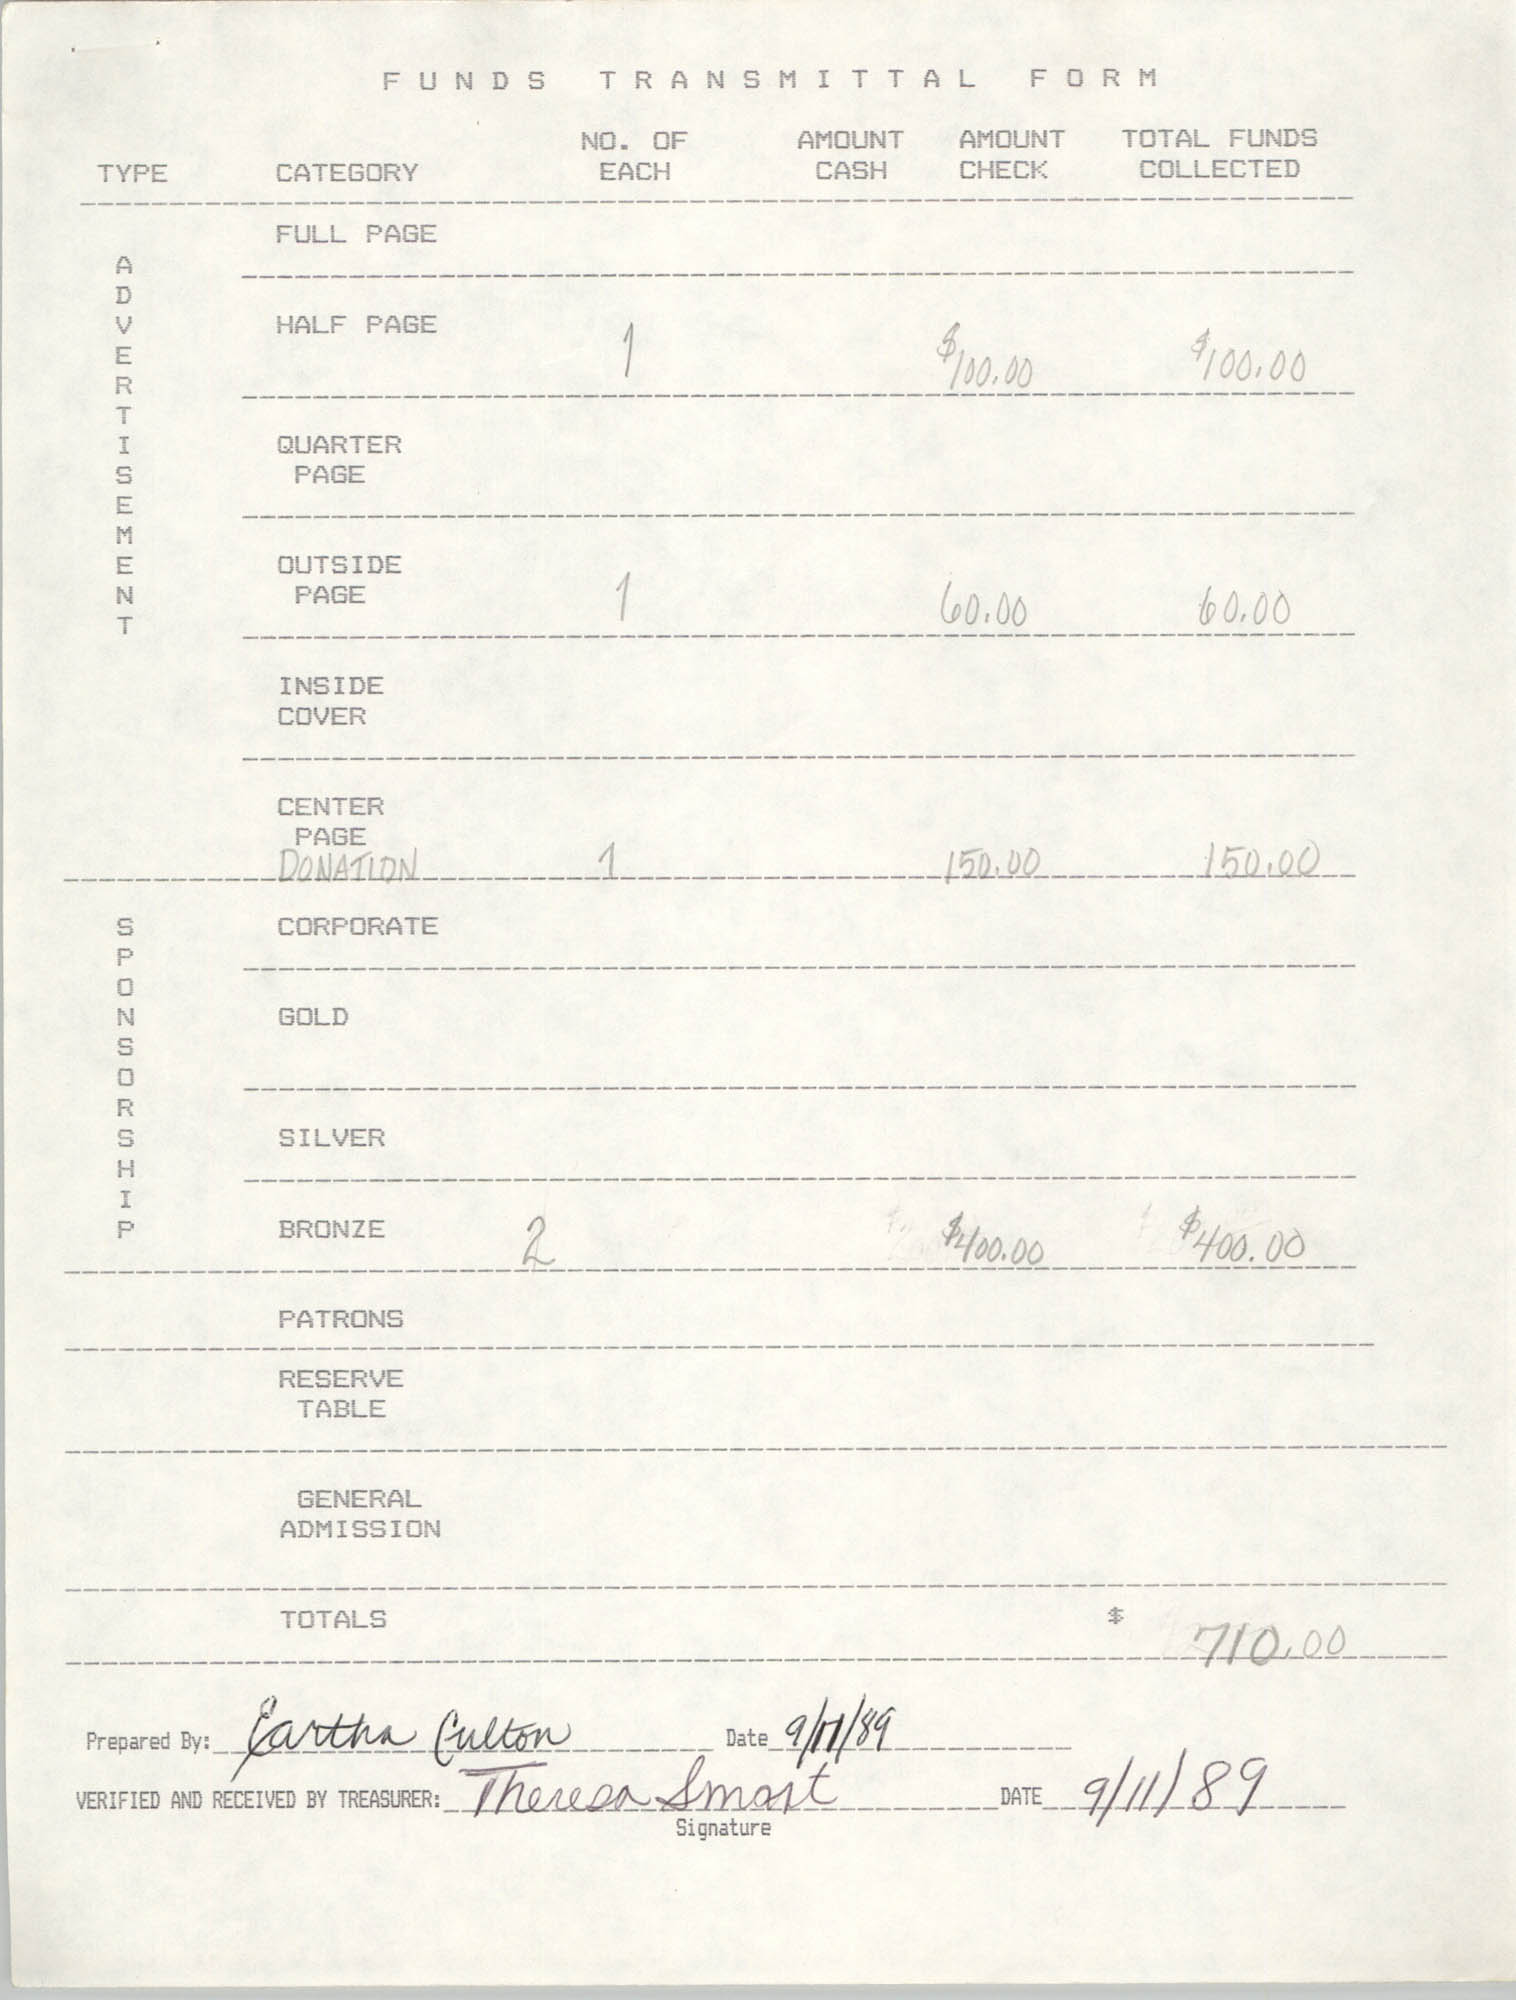 Funds Transmittal Form, E. Culton and Theresa Smart, September 11, 1989